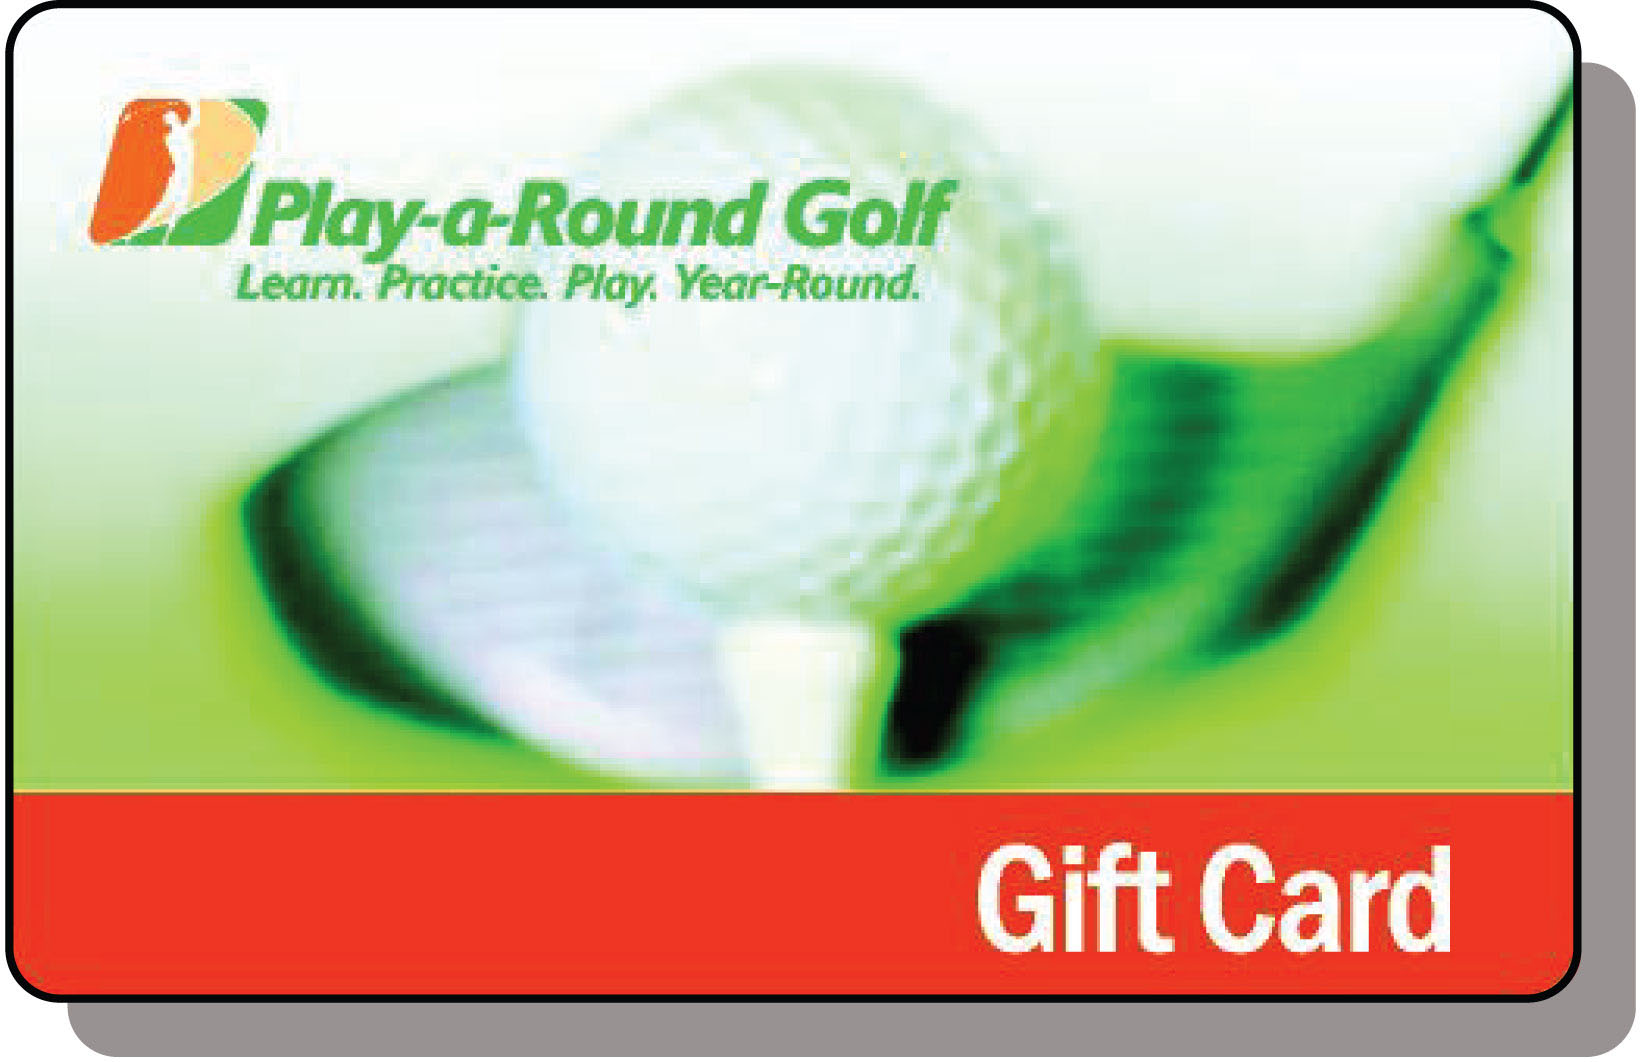 gift card for play a round golf